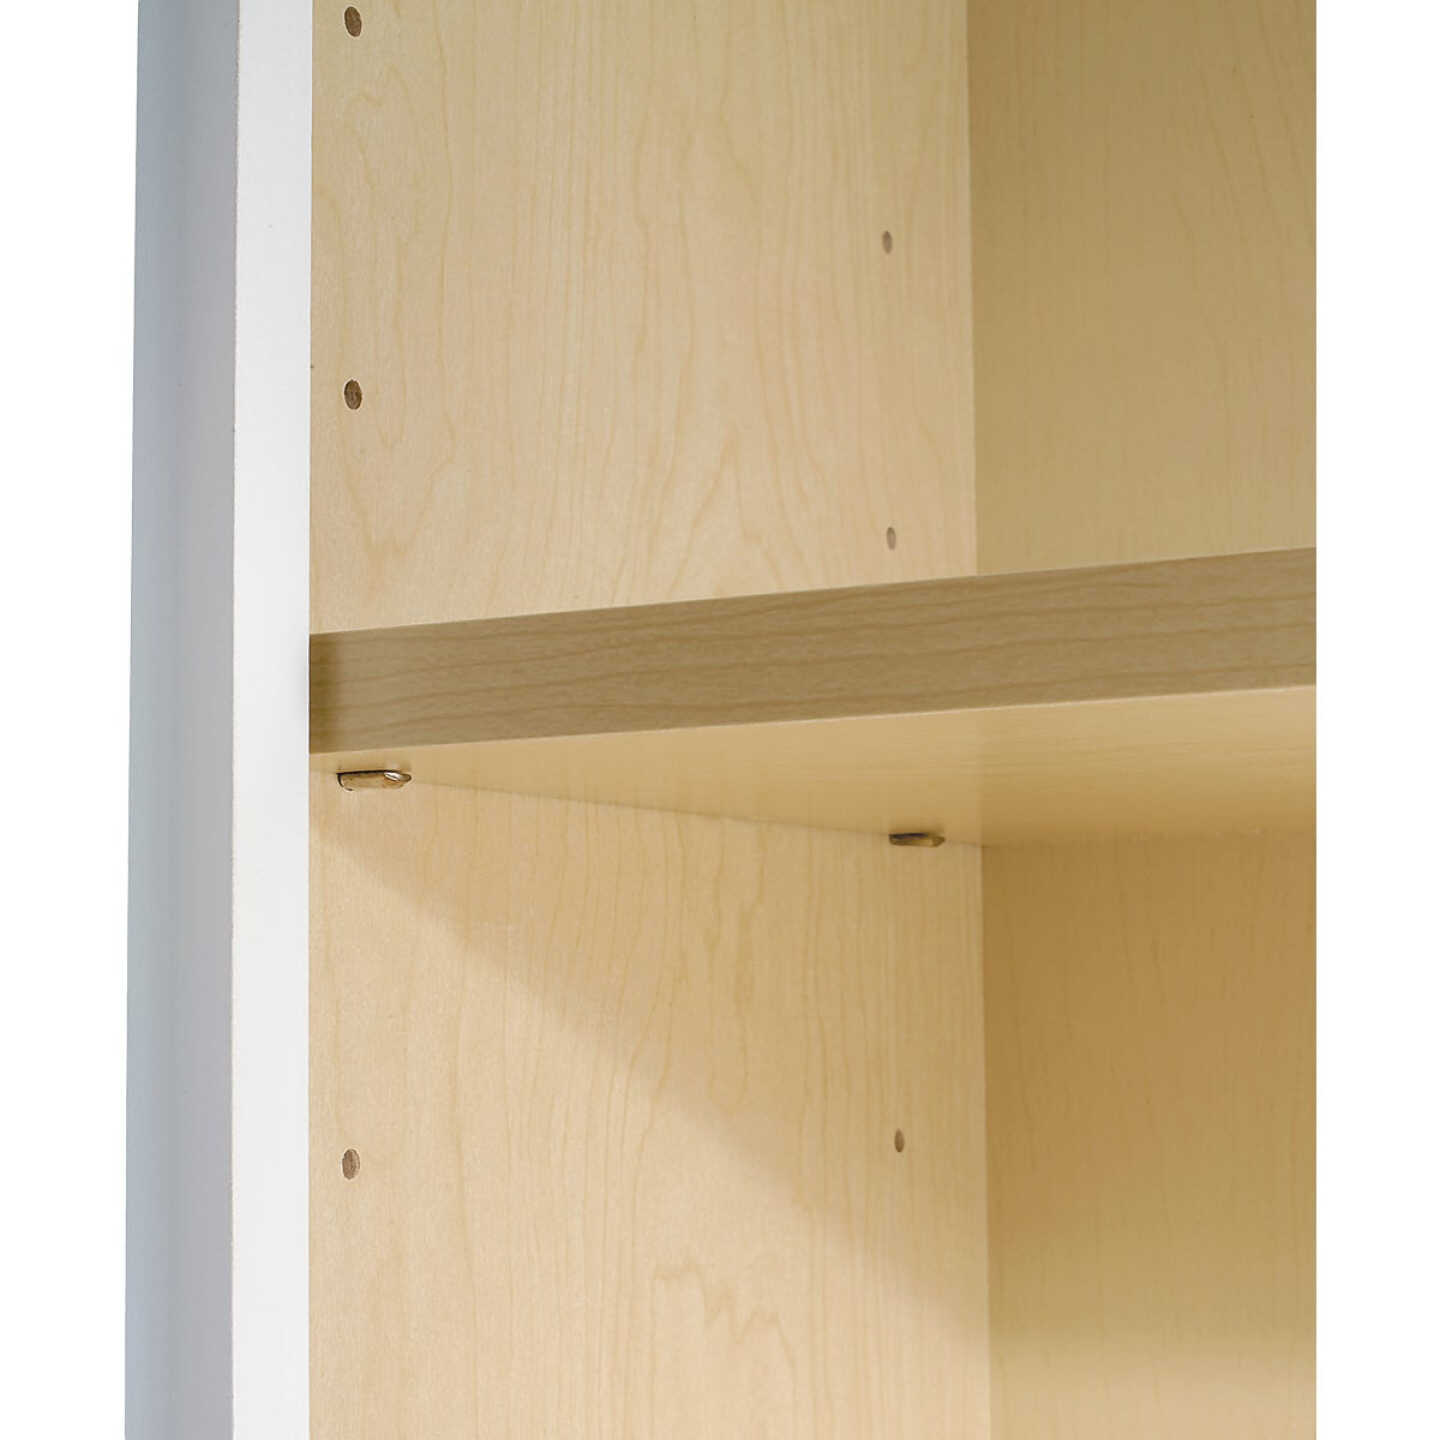 Continental Cabinets Andover Shaker 24 In. W x 30 In. H x 12 In. D White Thermofoil Wall Kitchen Cabinet Image 4